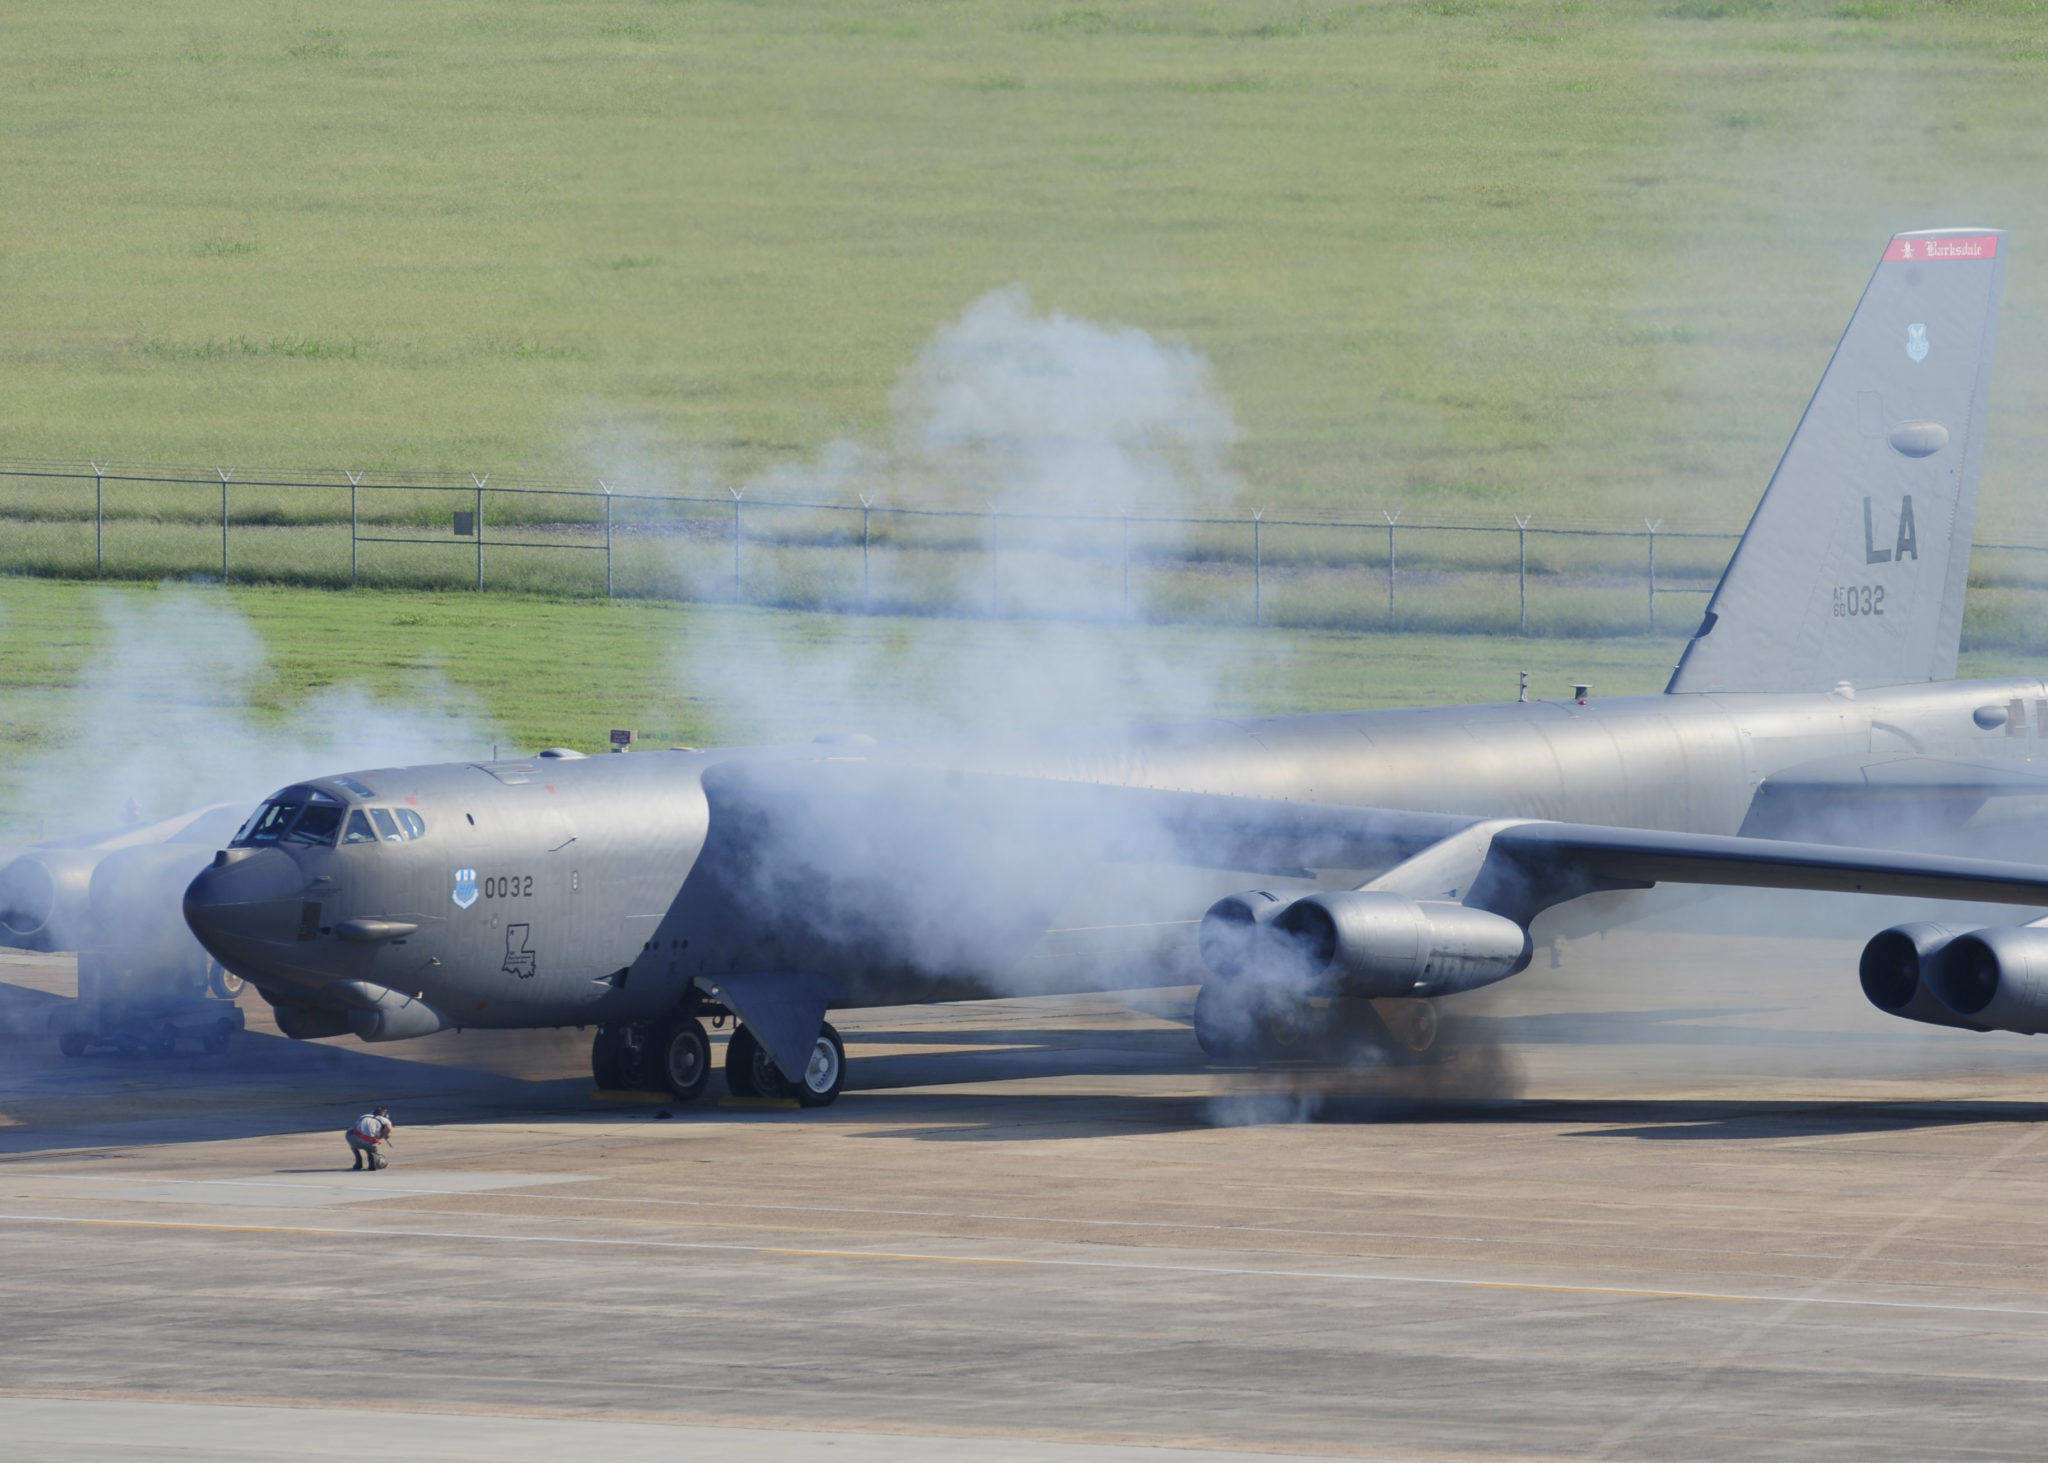 A B-52H Stratofortress starts its engines during a Minimum Interval Takeoff on Barksdale Air Force Base, La., Aug. 14, 2014. Common place during the Cold War, a MITO challenges crews to get multiple aircraft airborne as quickly as possible in response to an alert call. (U.S. Air Force photo/Staff Sgt. Sean Martin)